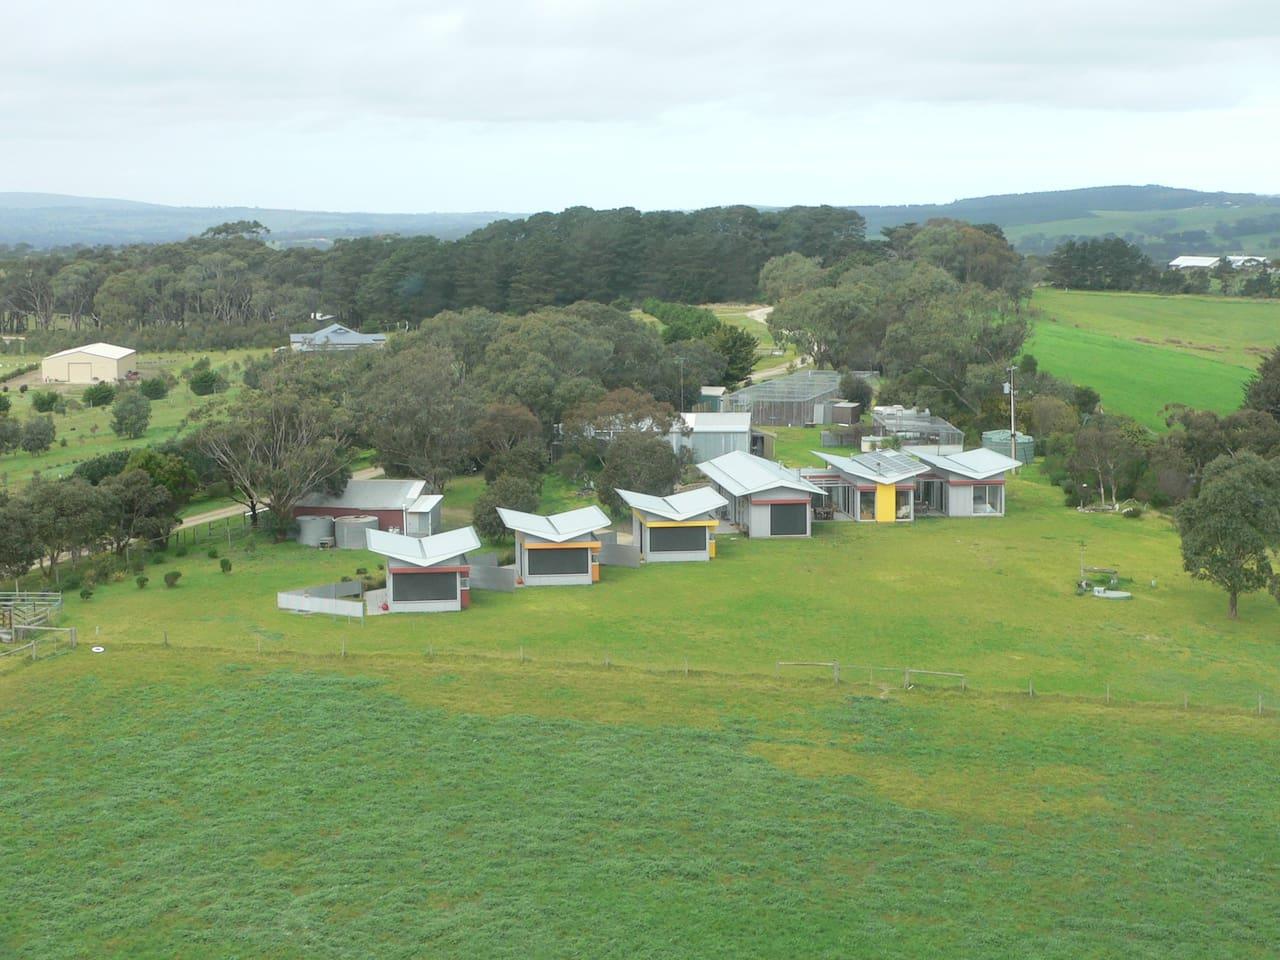 Lush Pastures from a chopper which lands in front of your Lodge to take you on a flight.